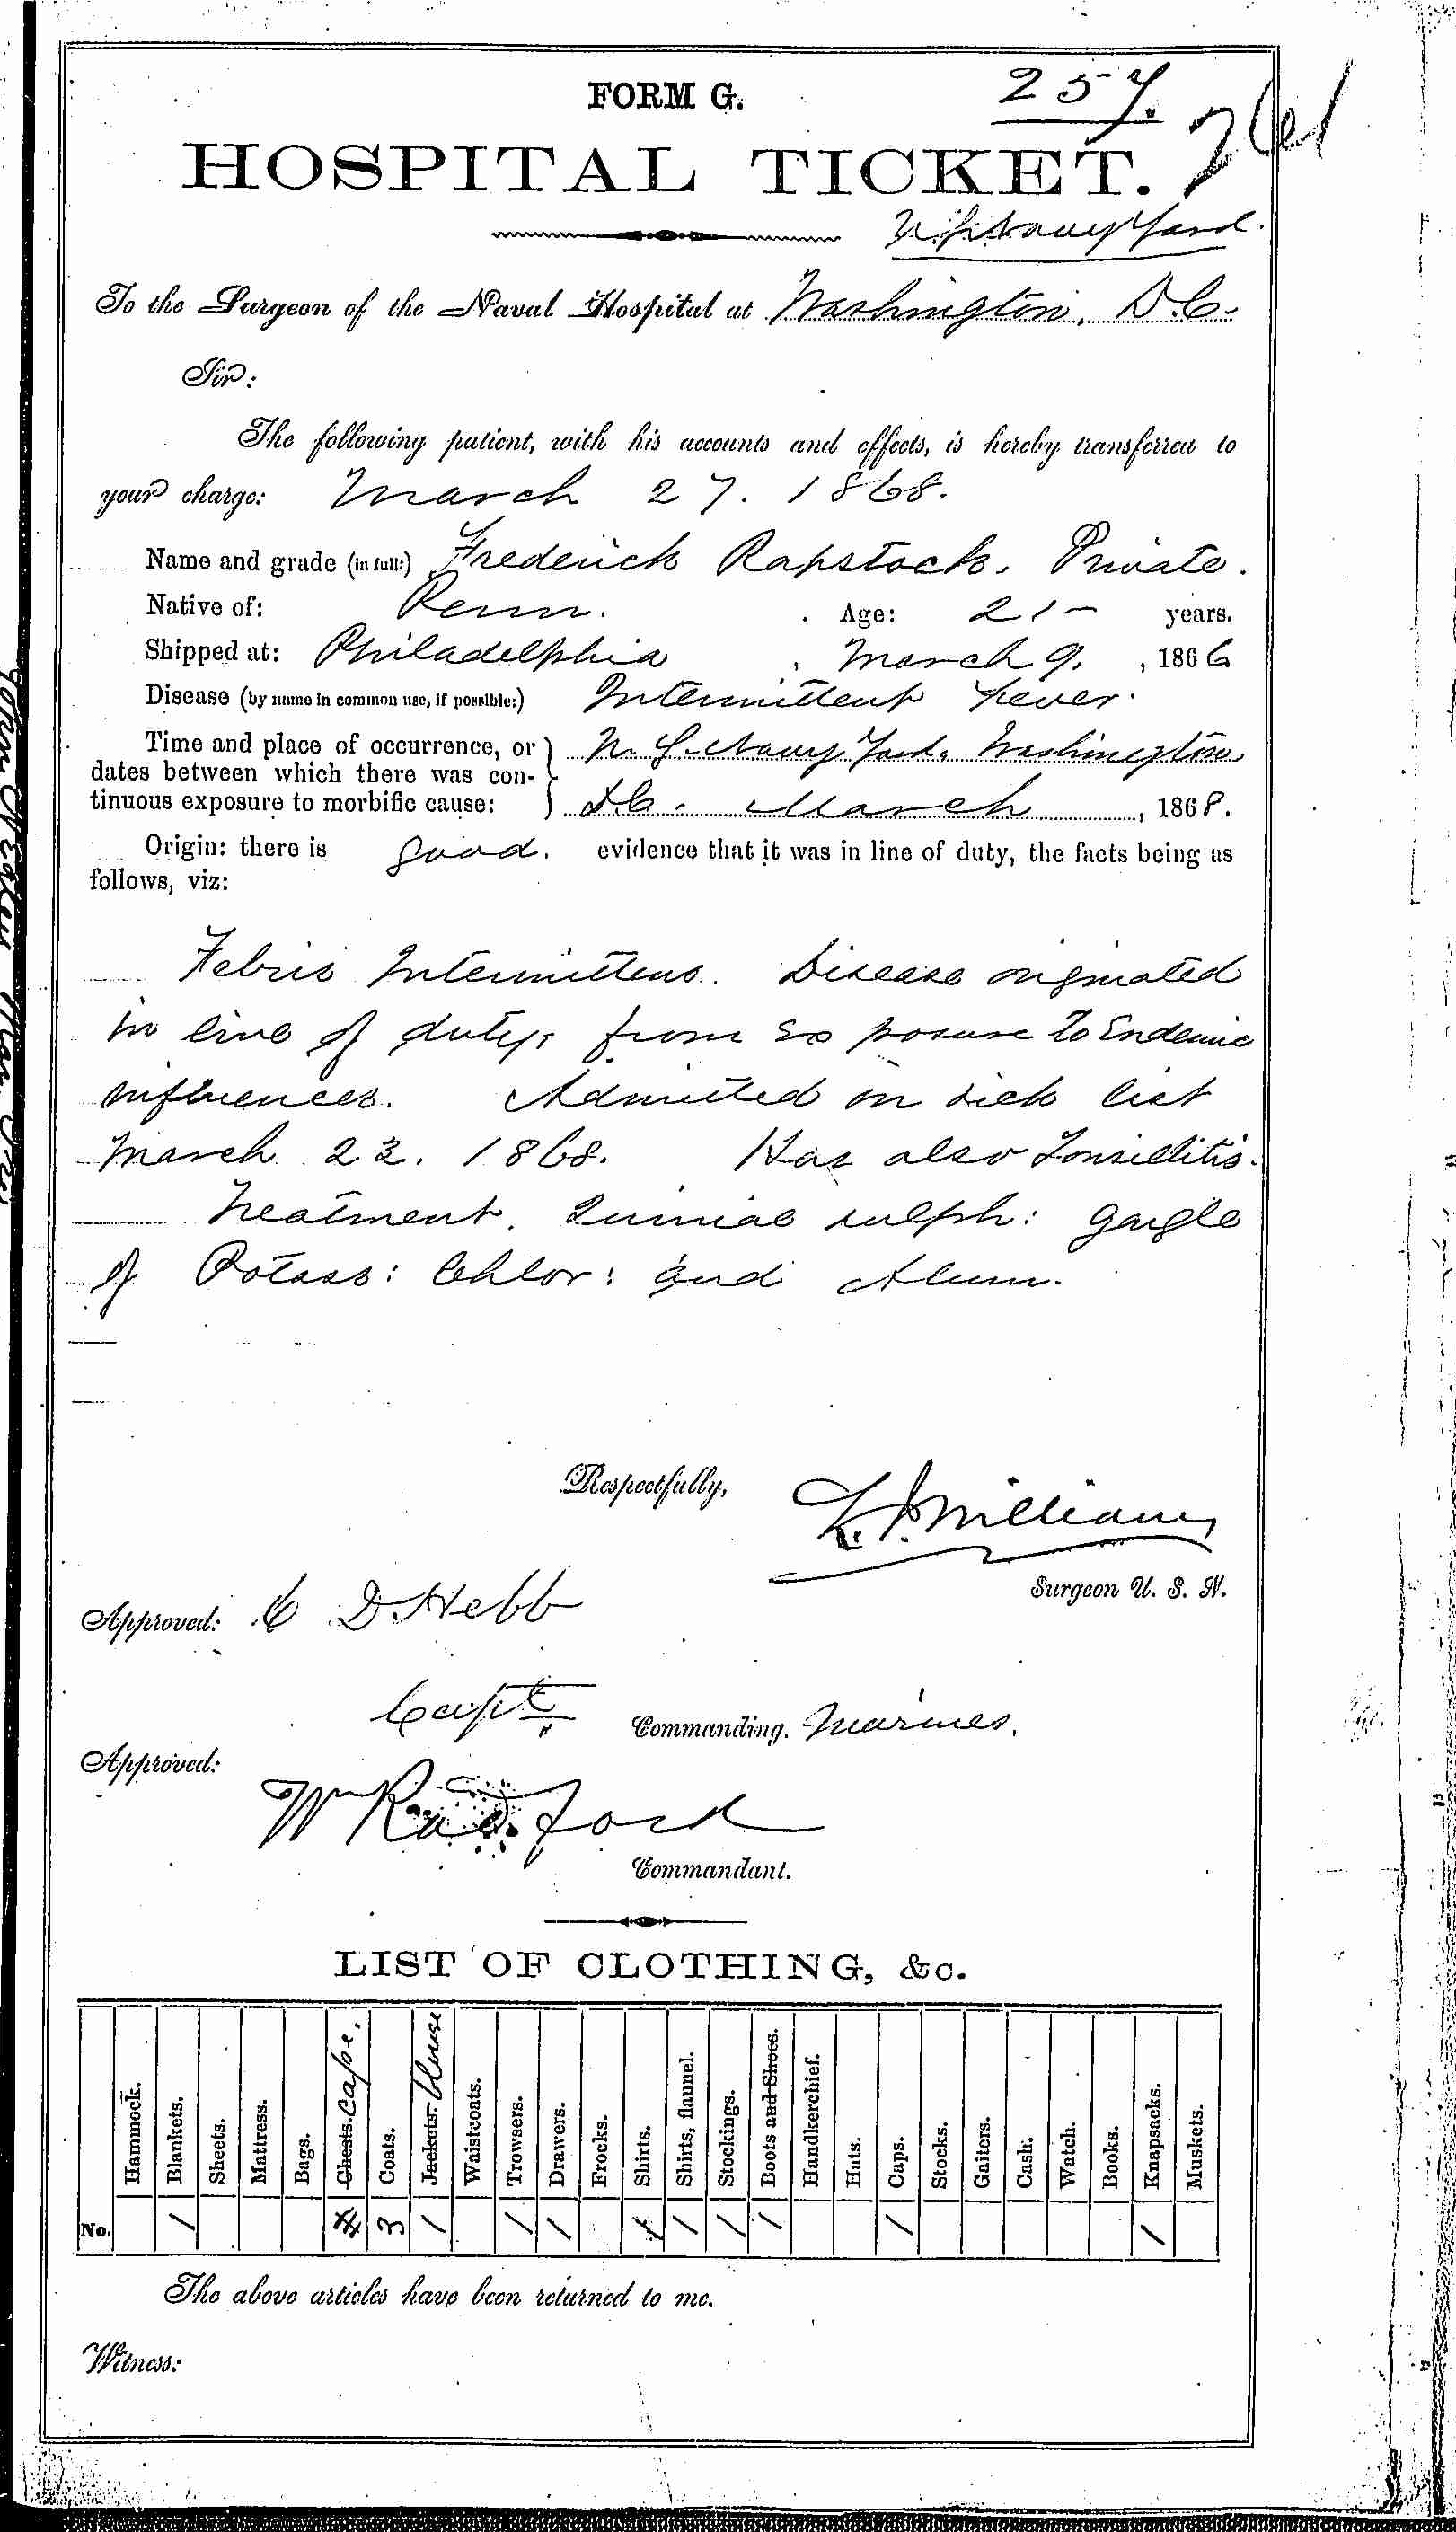 Entry for Frederick Rapstock (second admission page 1 of 2) in the log Hospital Tickets and Case Papers - Naval Hospital - Washington, D.C. - 1866-68